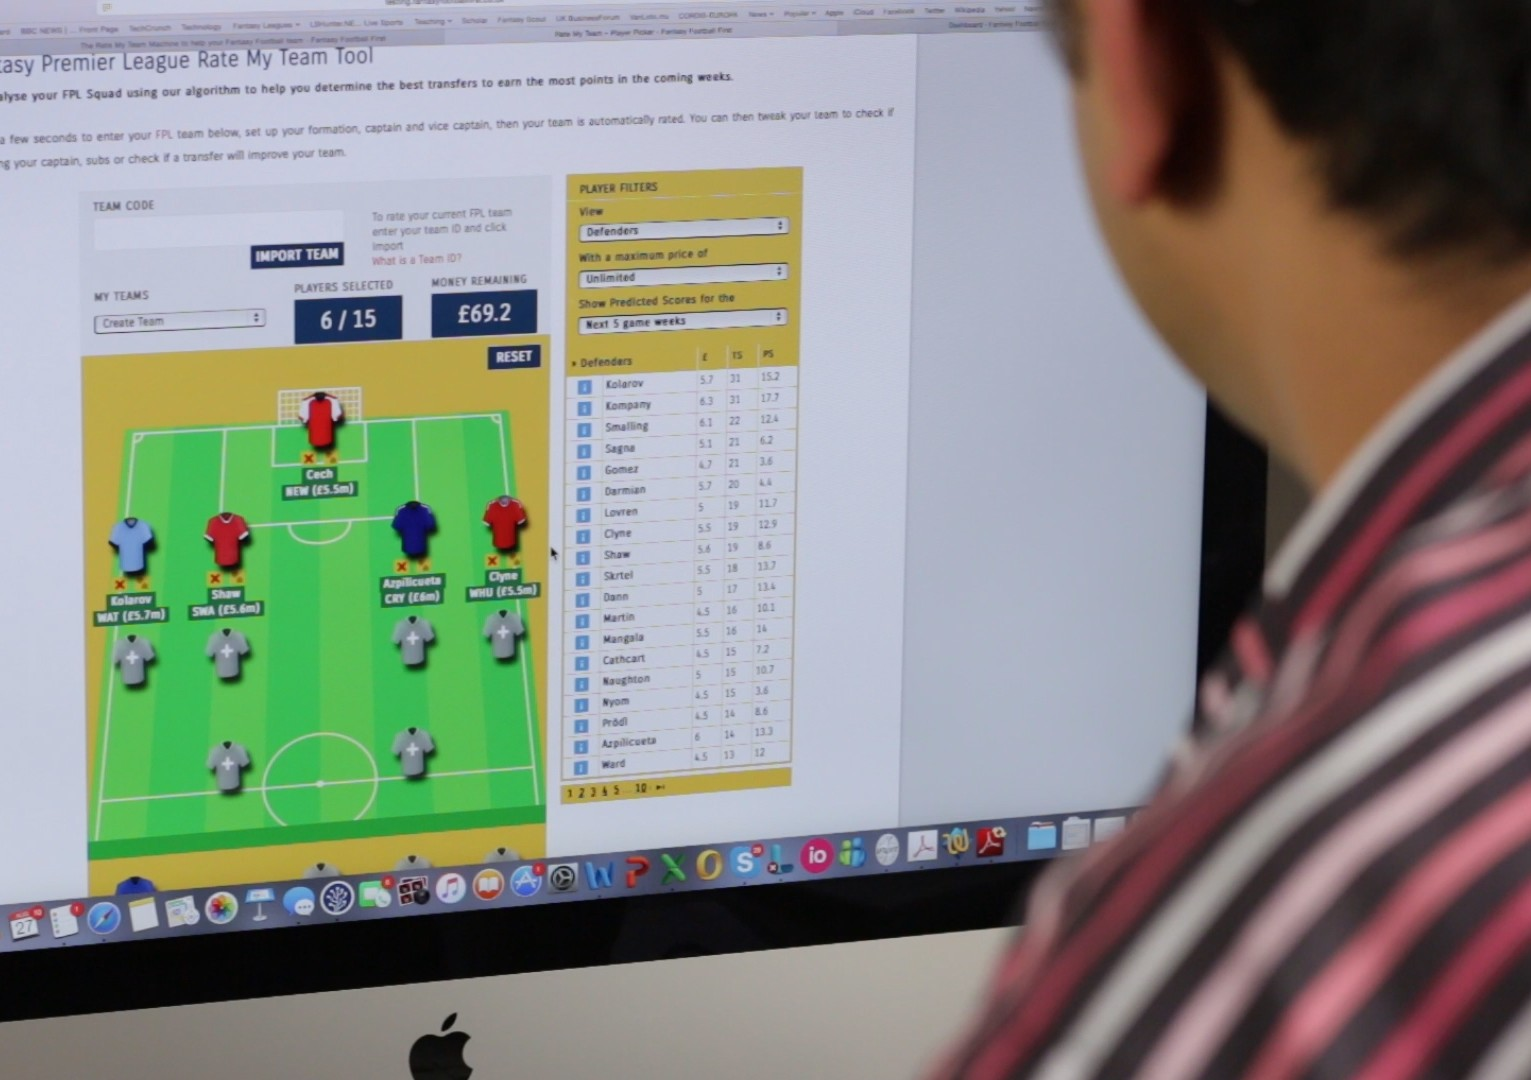 Researchers have predicted the outcome after simulating the entire soccer tournament 100,000 times.